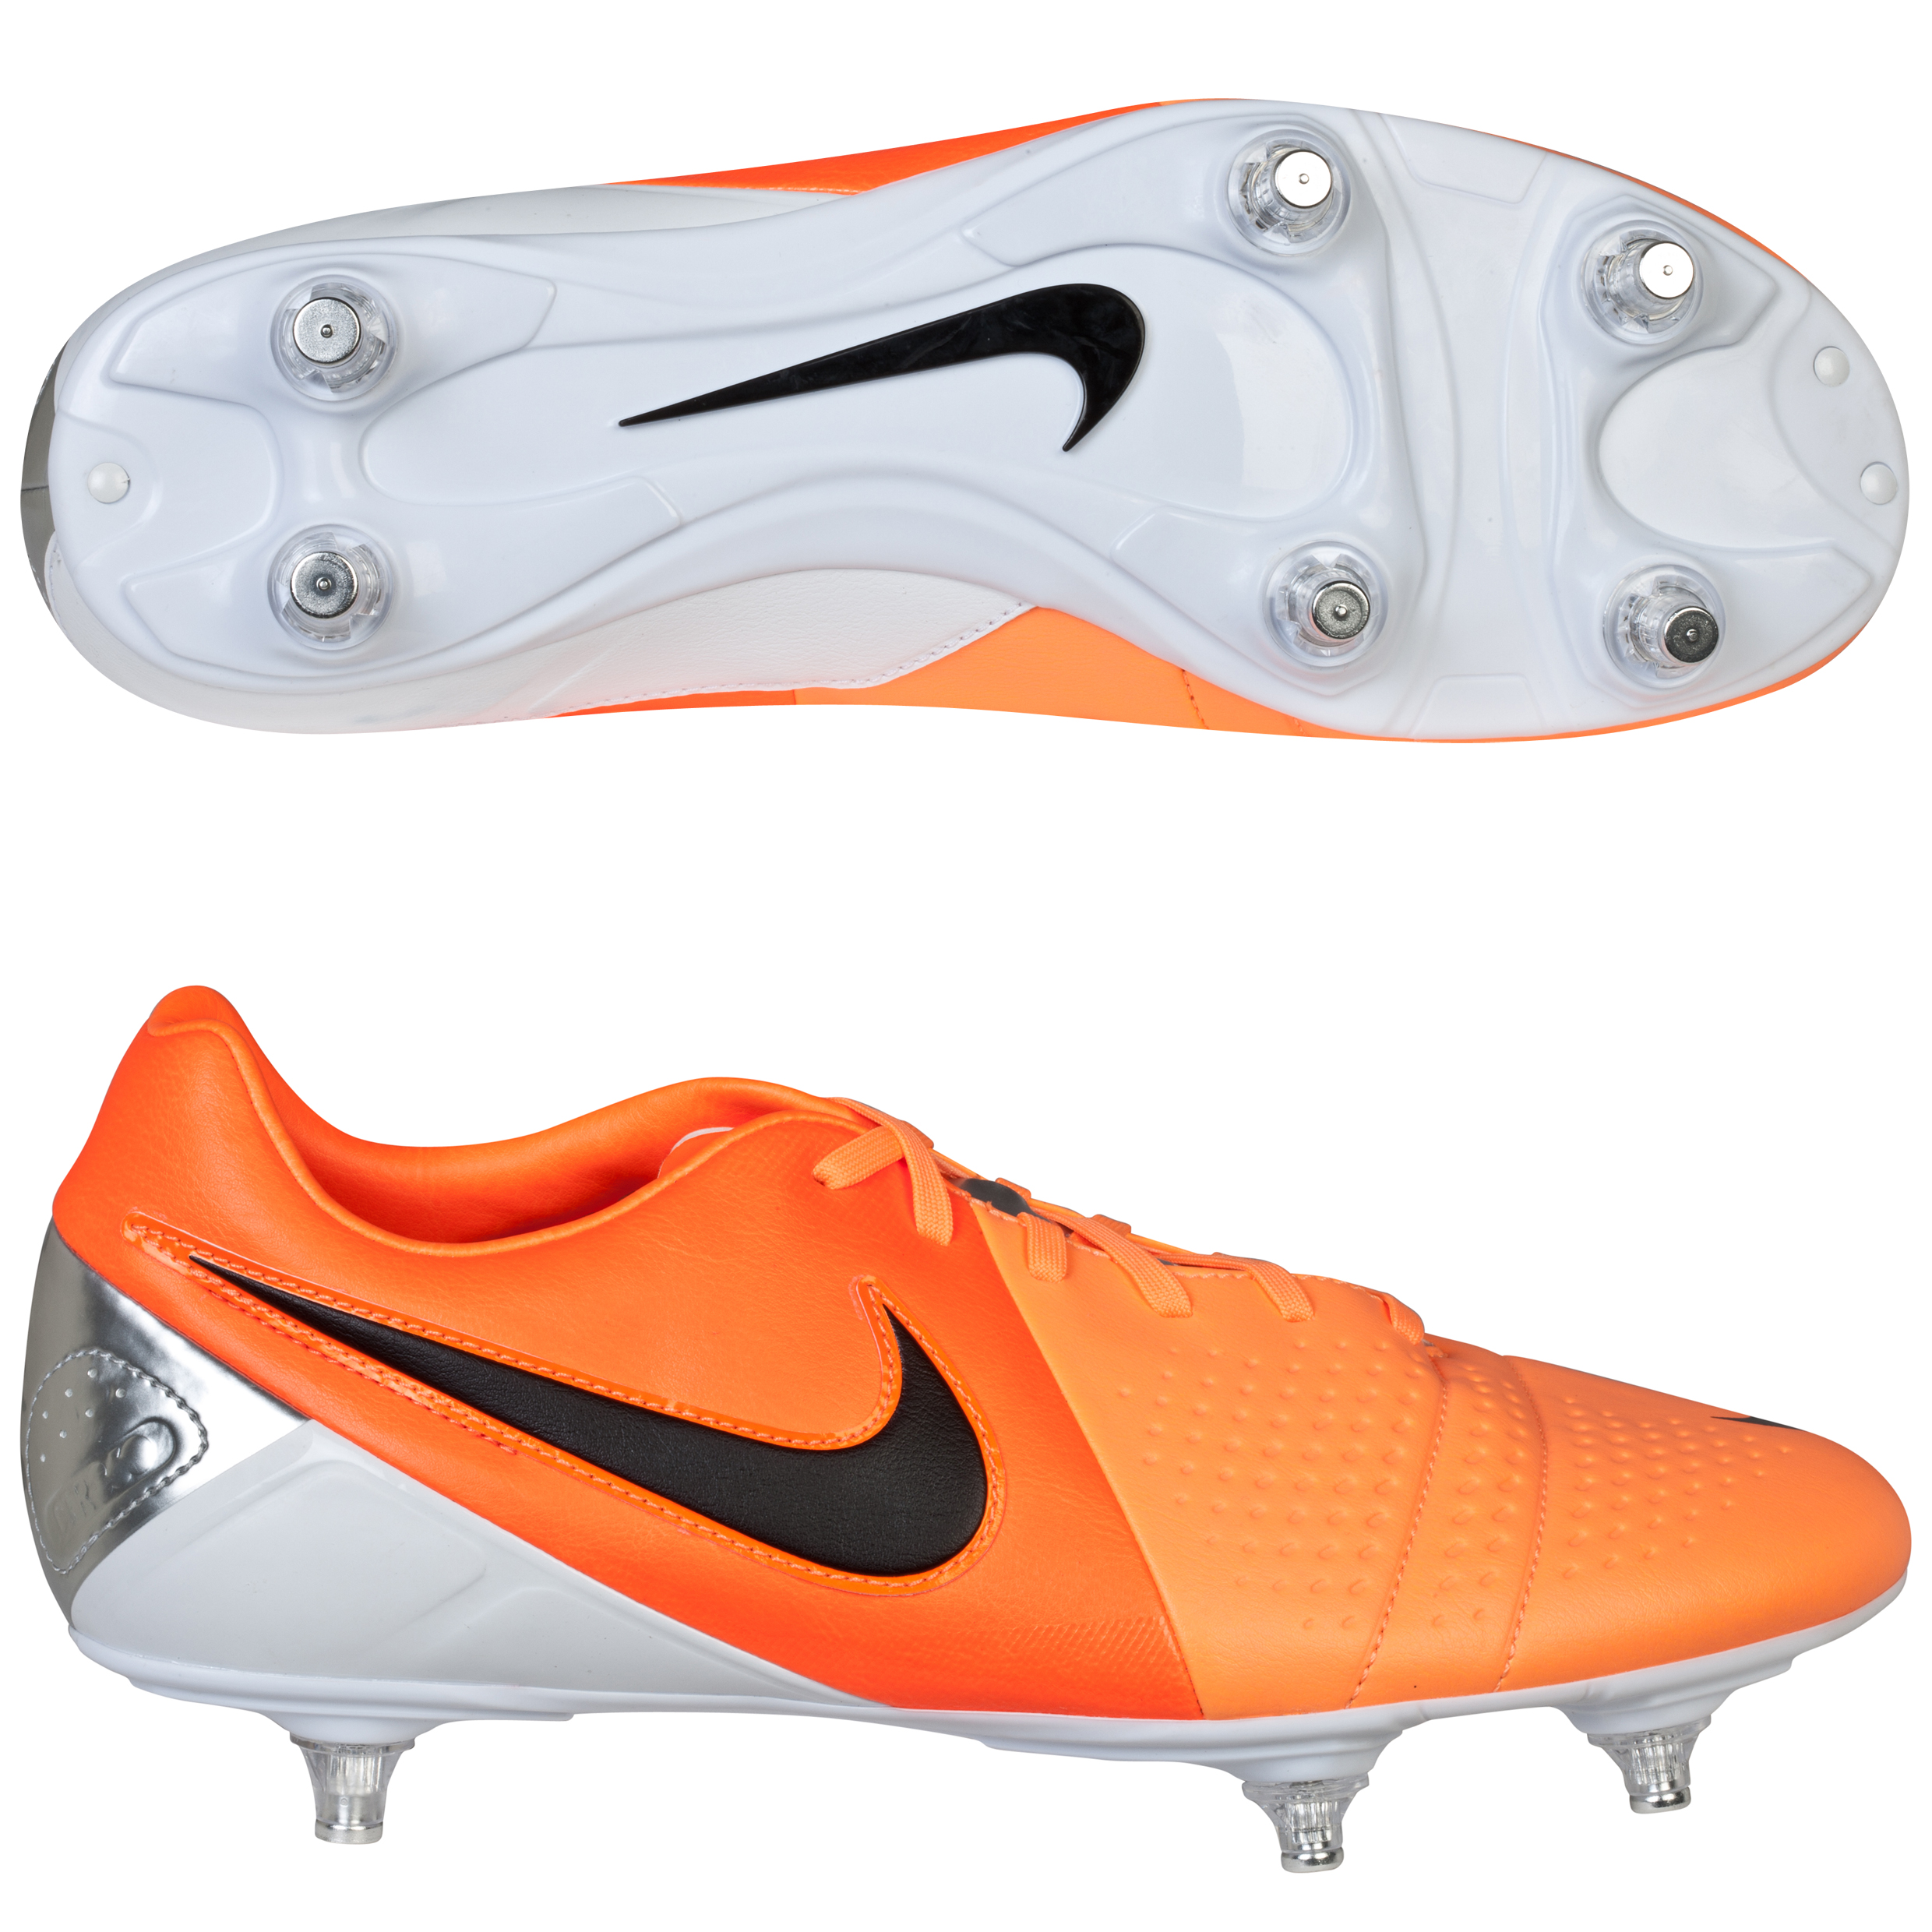 Nike CTR360 Libretto III Soft Ground Football Boots Orange